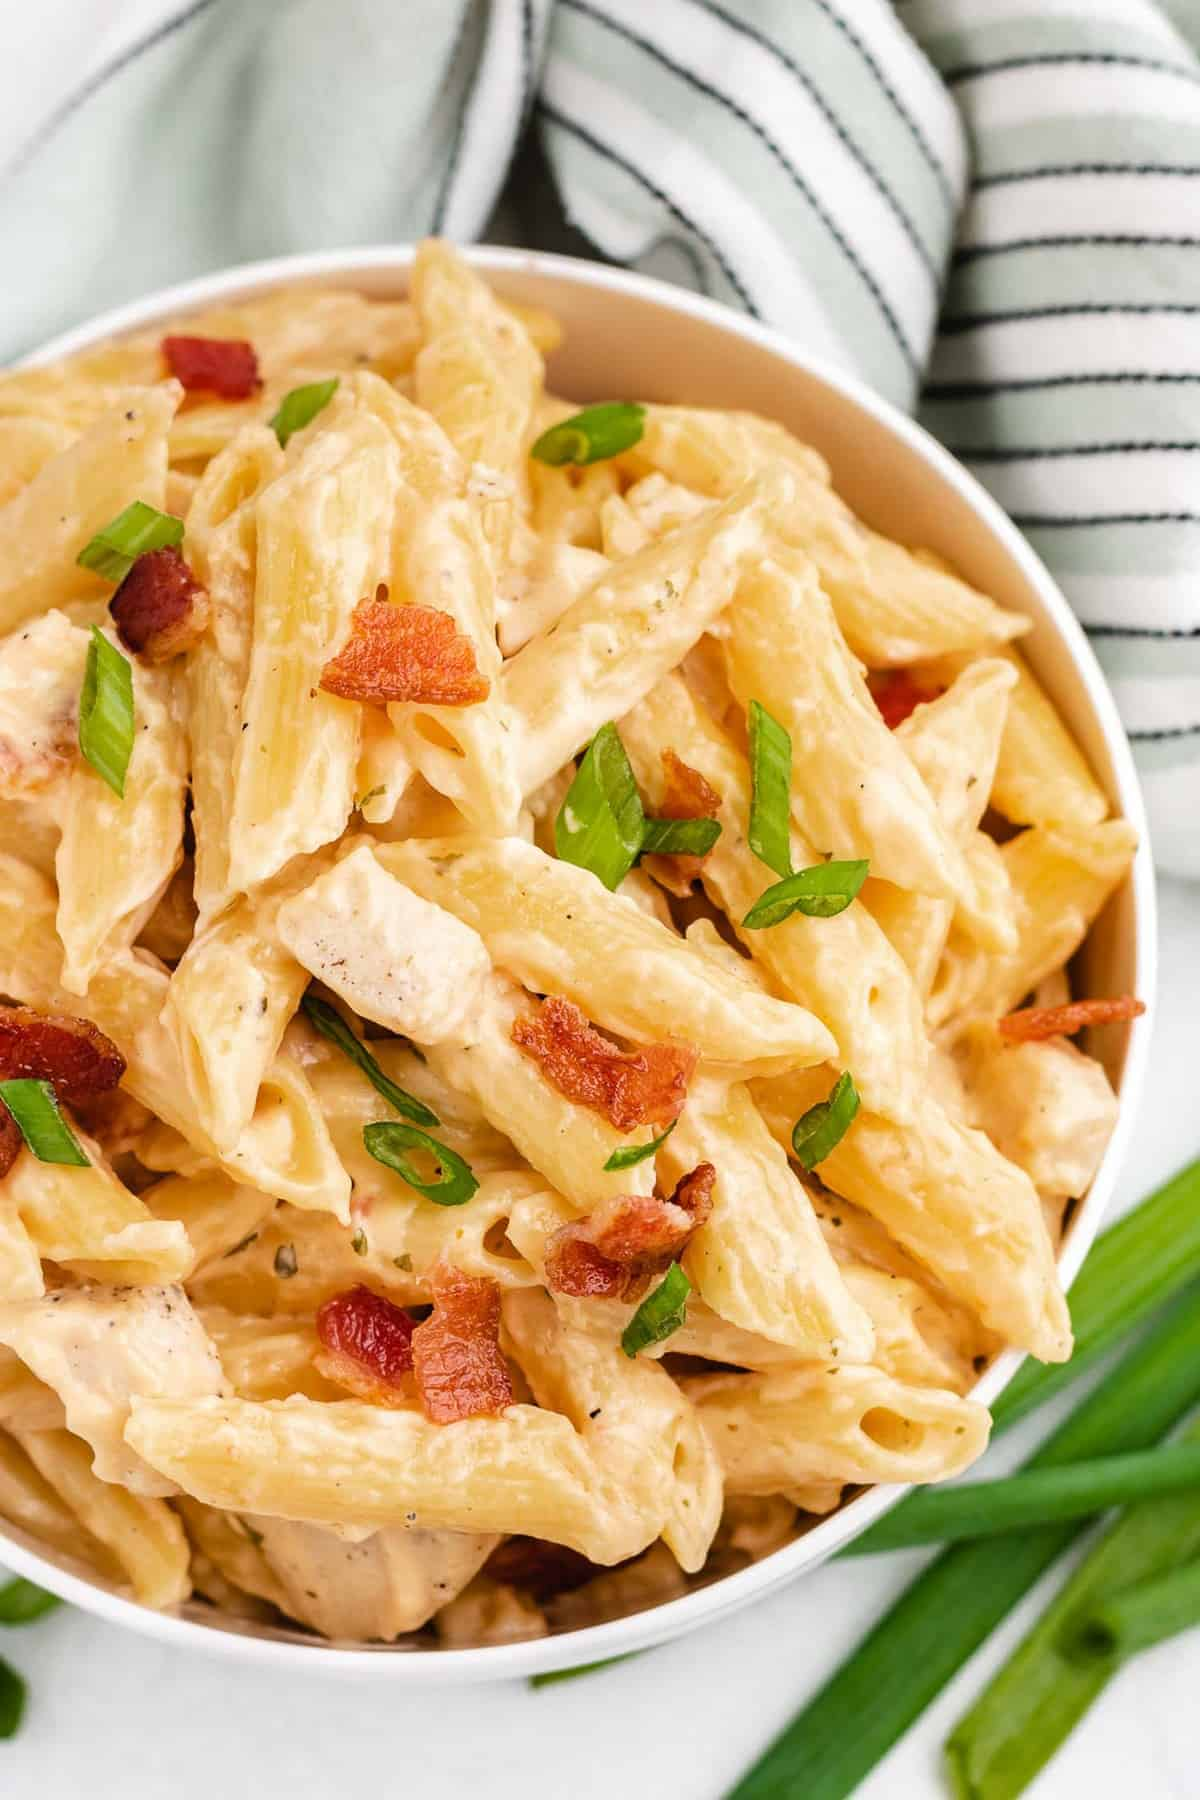 Overhead view of pasta garnished with green onions and bacon.